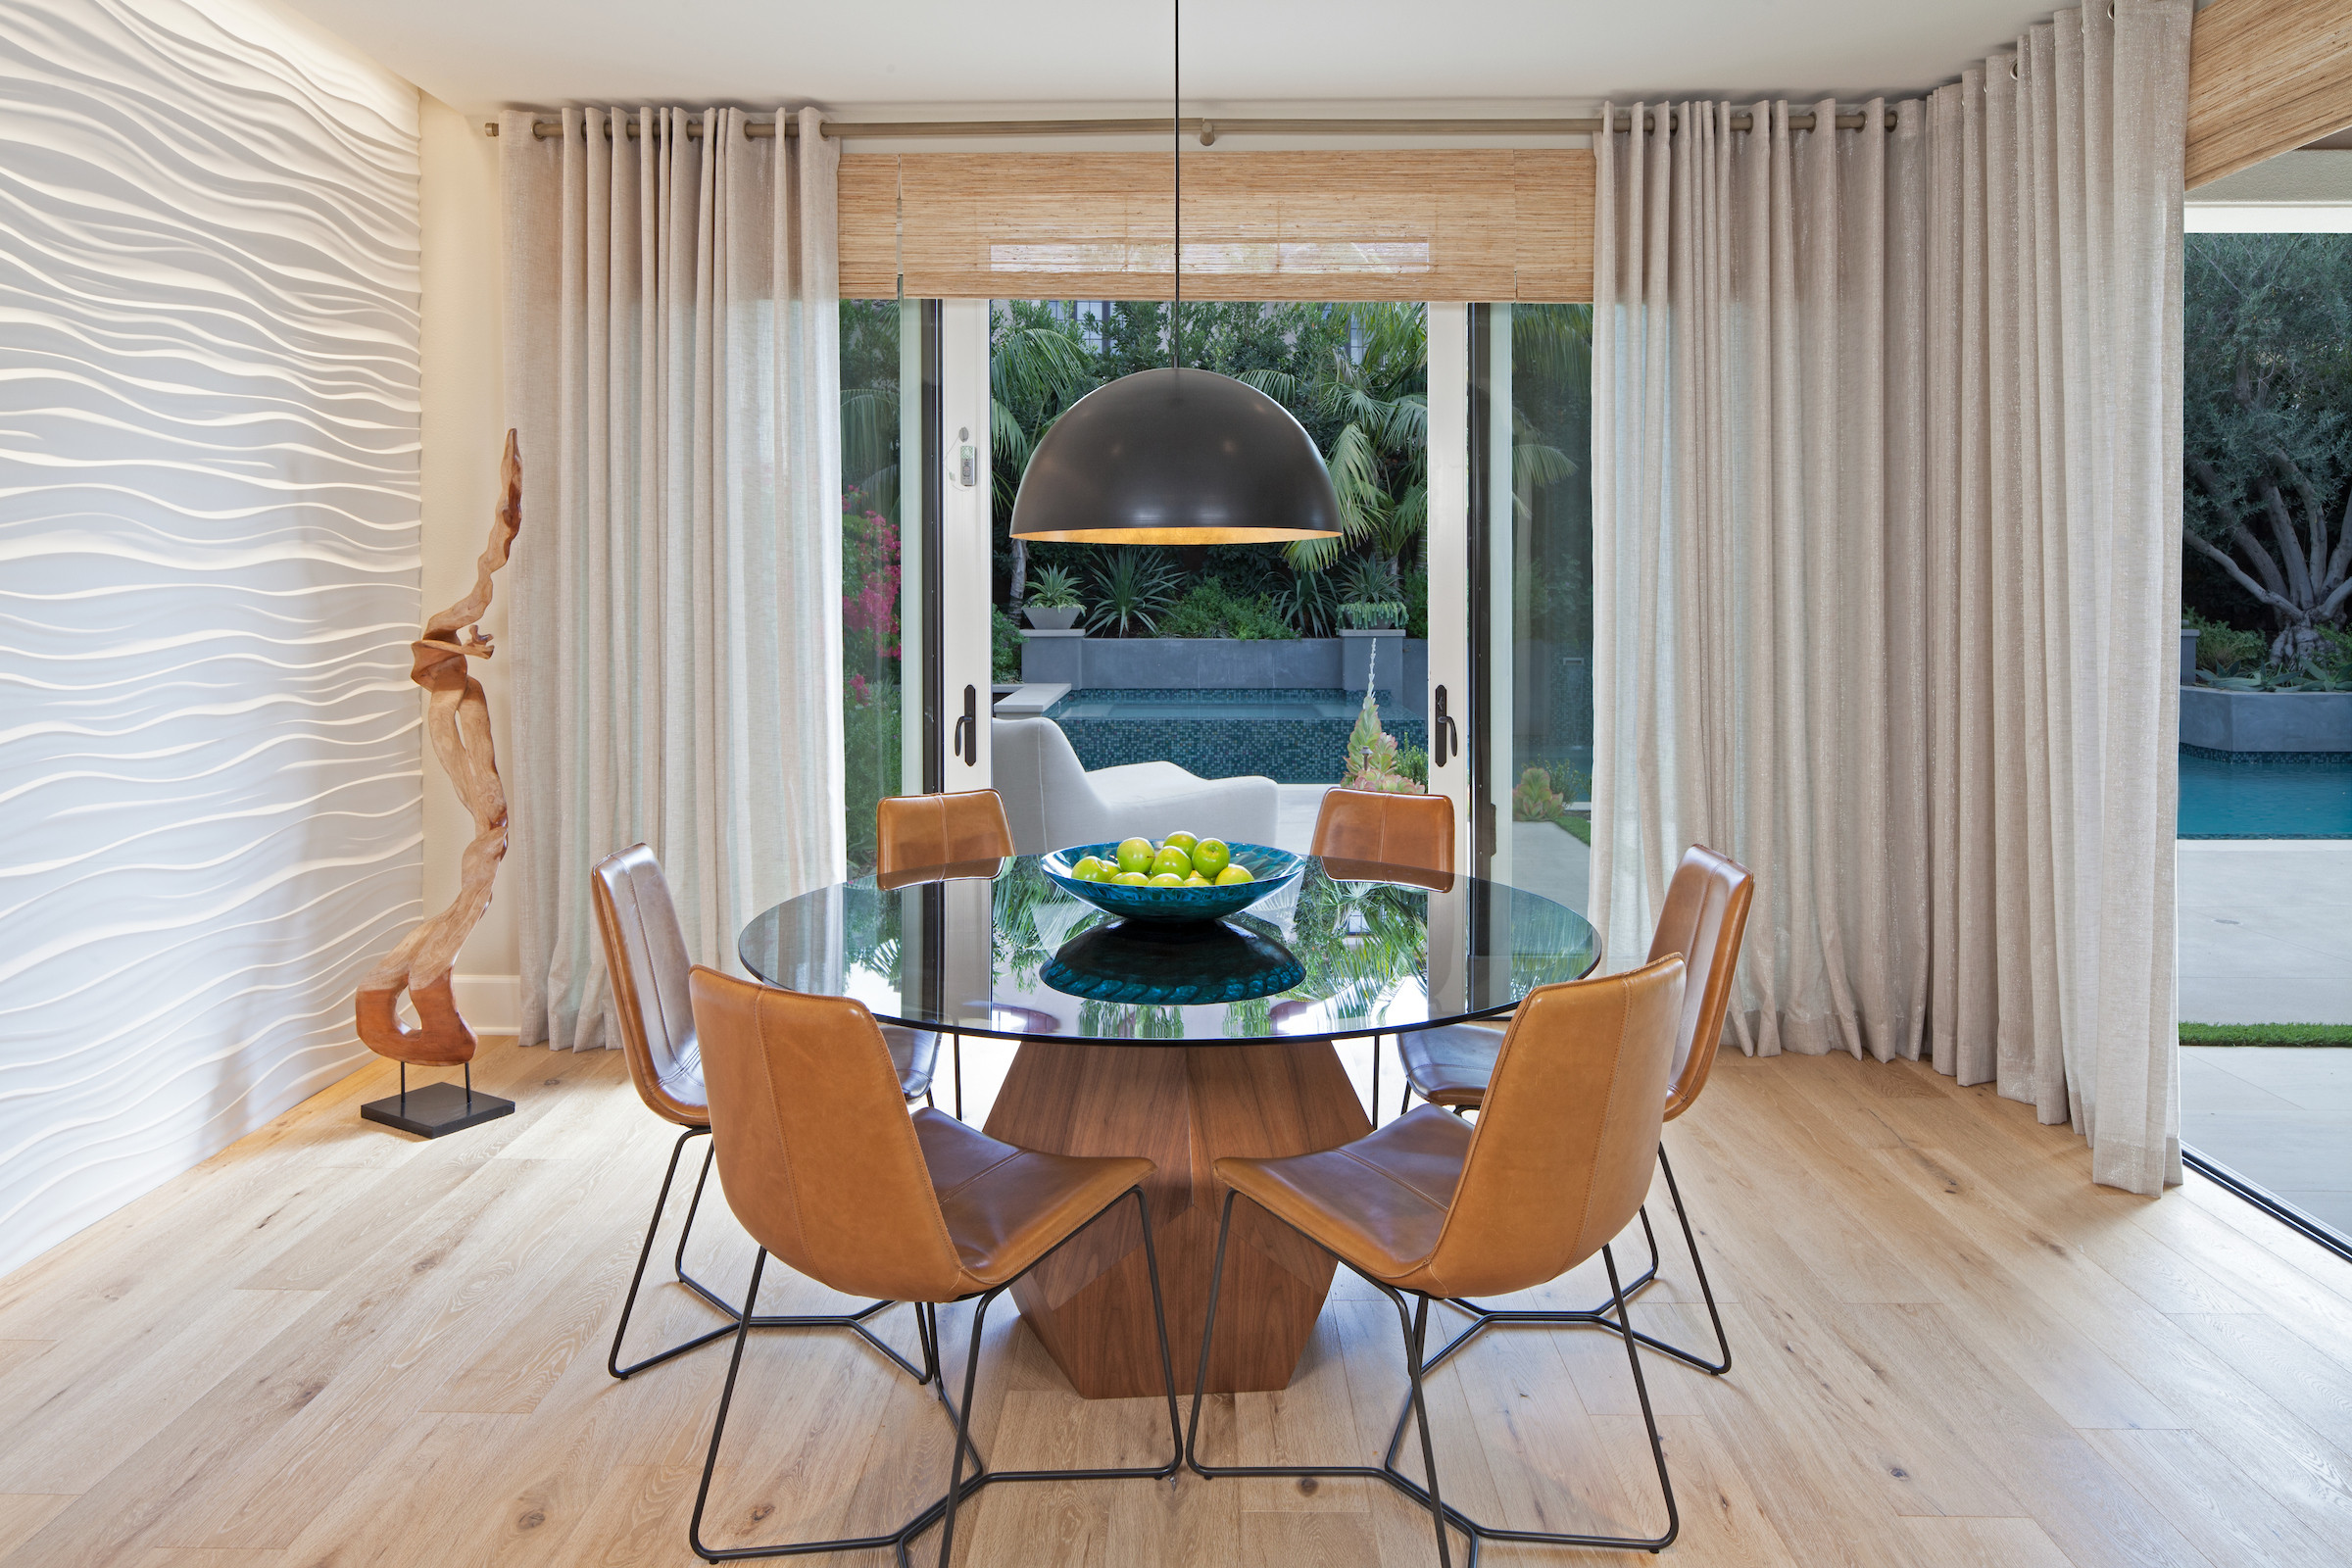 75 Beautiful Coastal Dining Room Pictures Ideas February 2021 Houzz